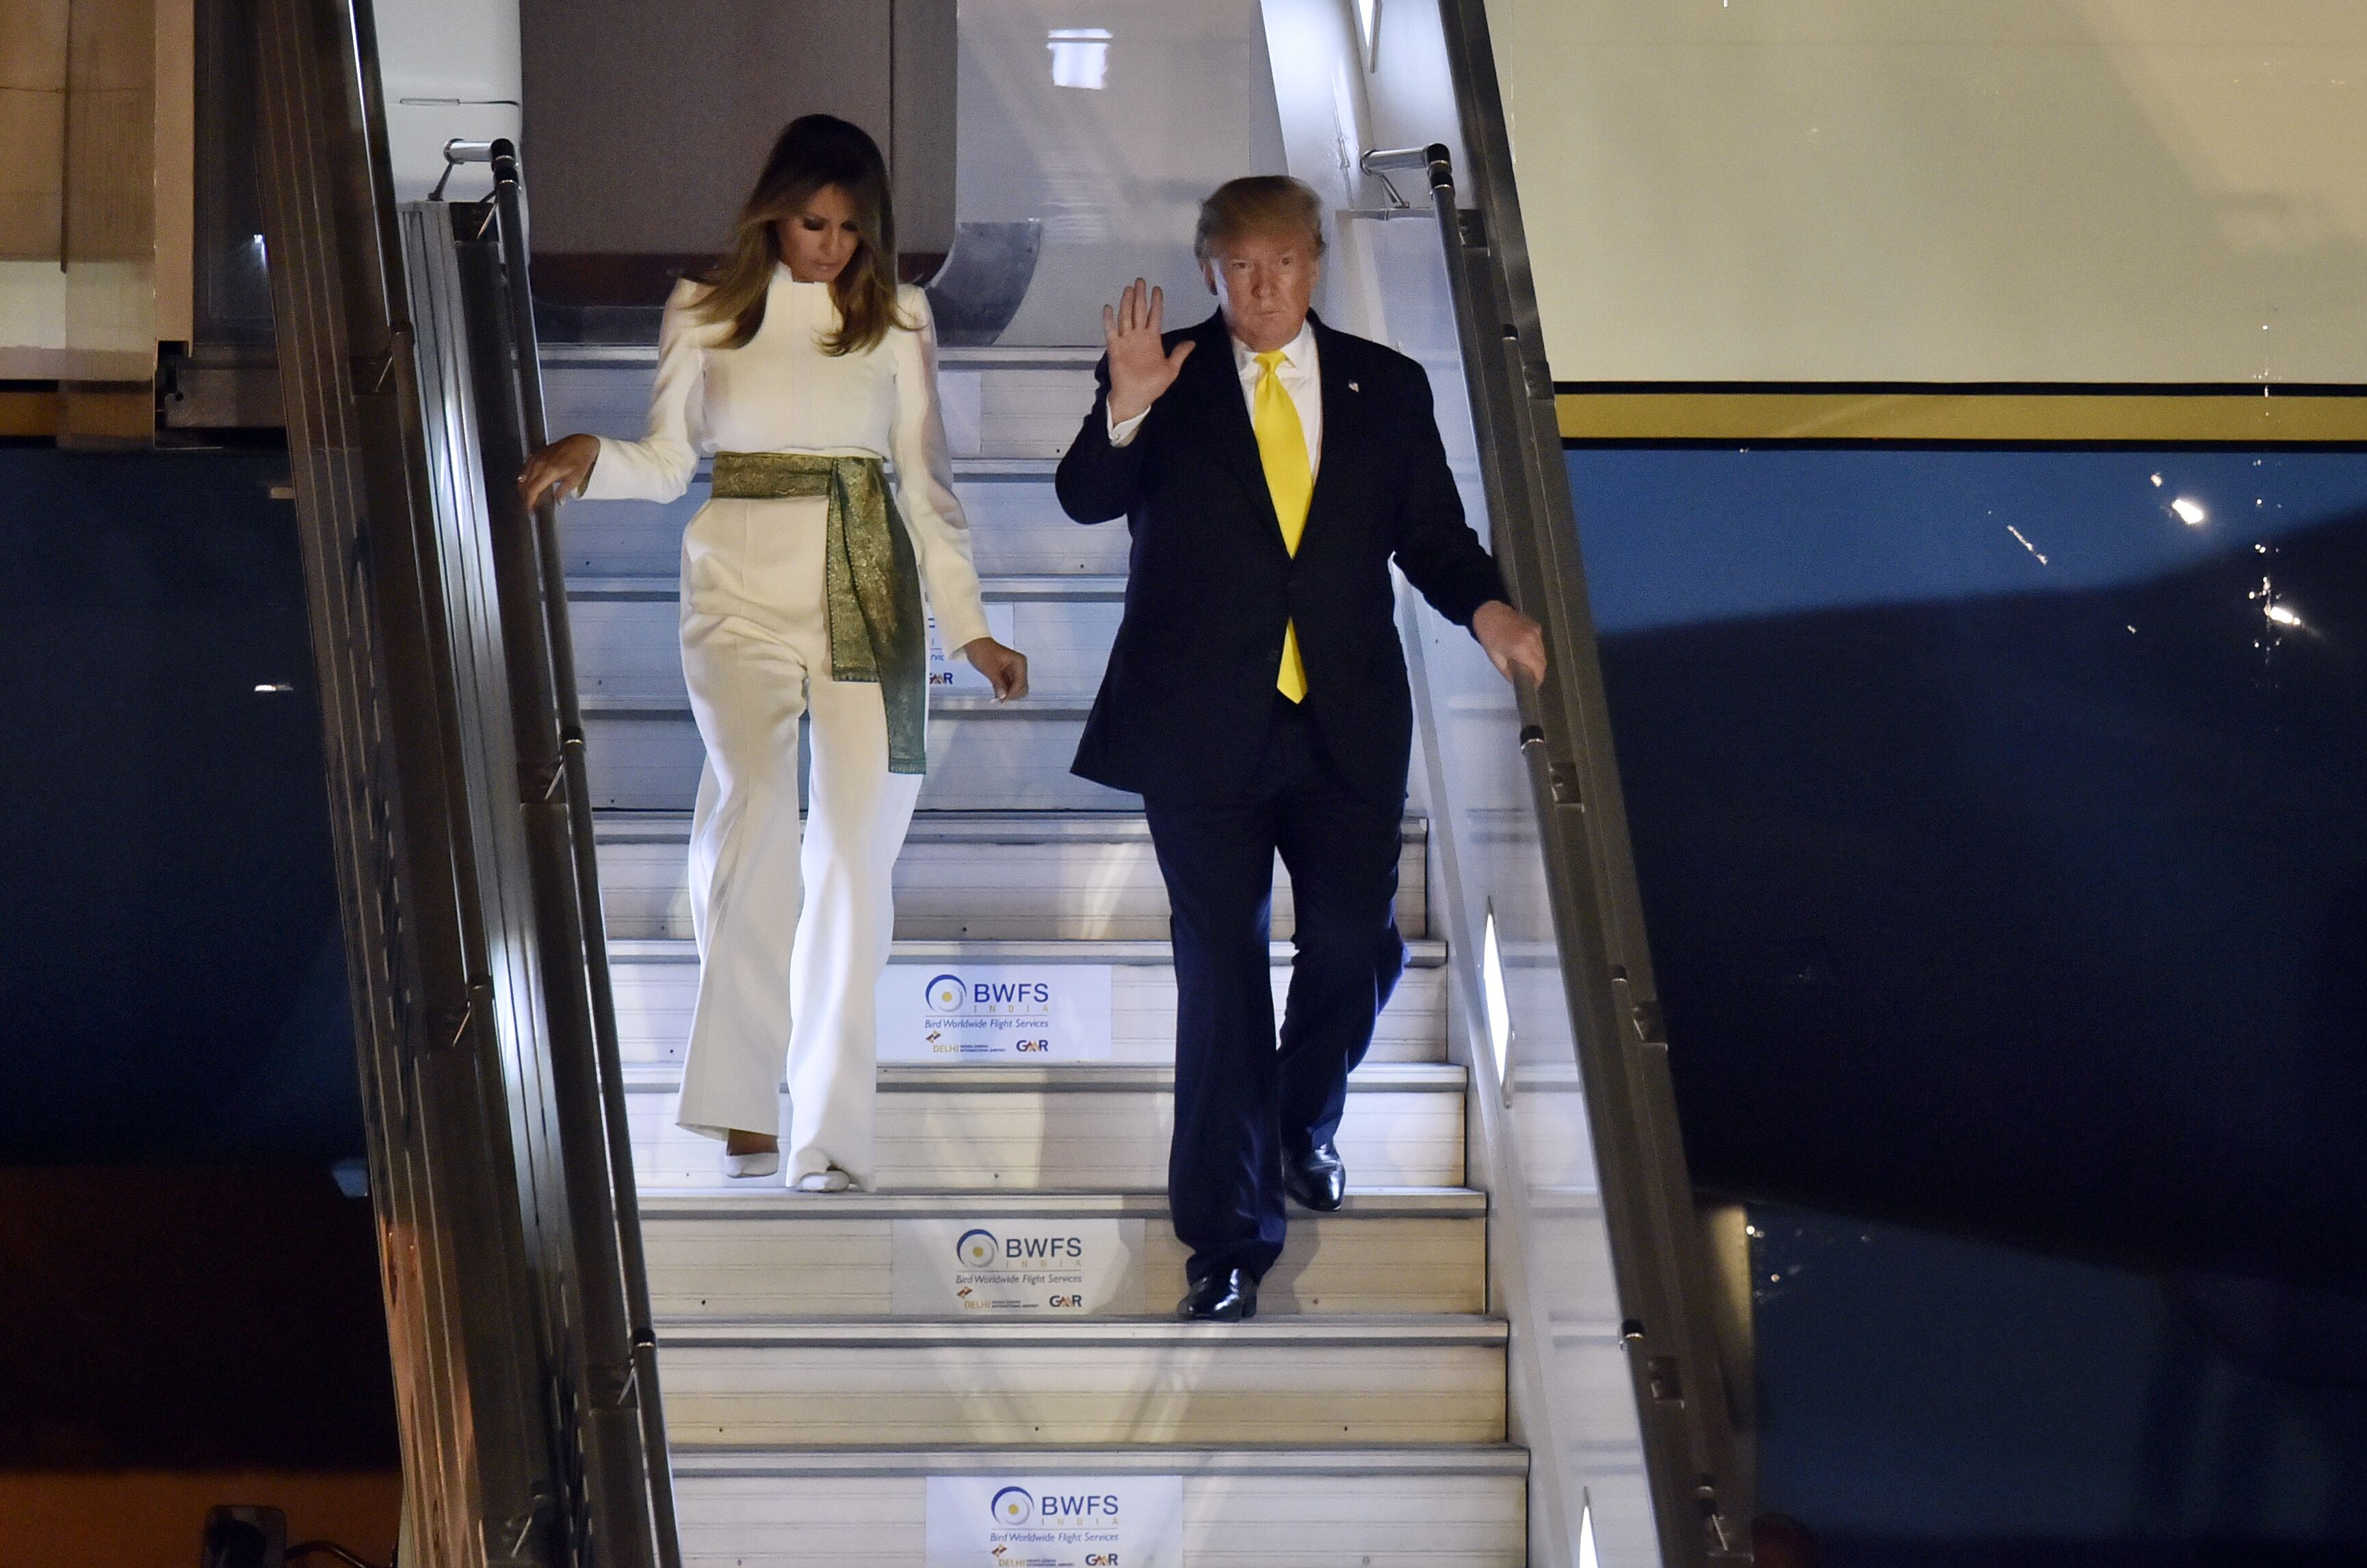 Melania and Donald Trump arrive at Air Force Station, Palam on February 24, 2020, in New Delhi, India | Photo: Ajay Aggarwal/Hindustan Times/Getty Images